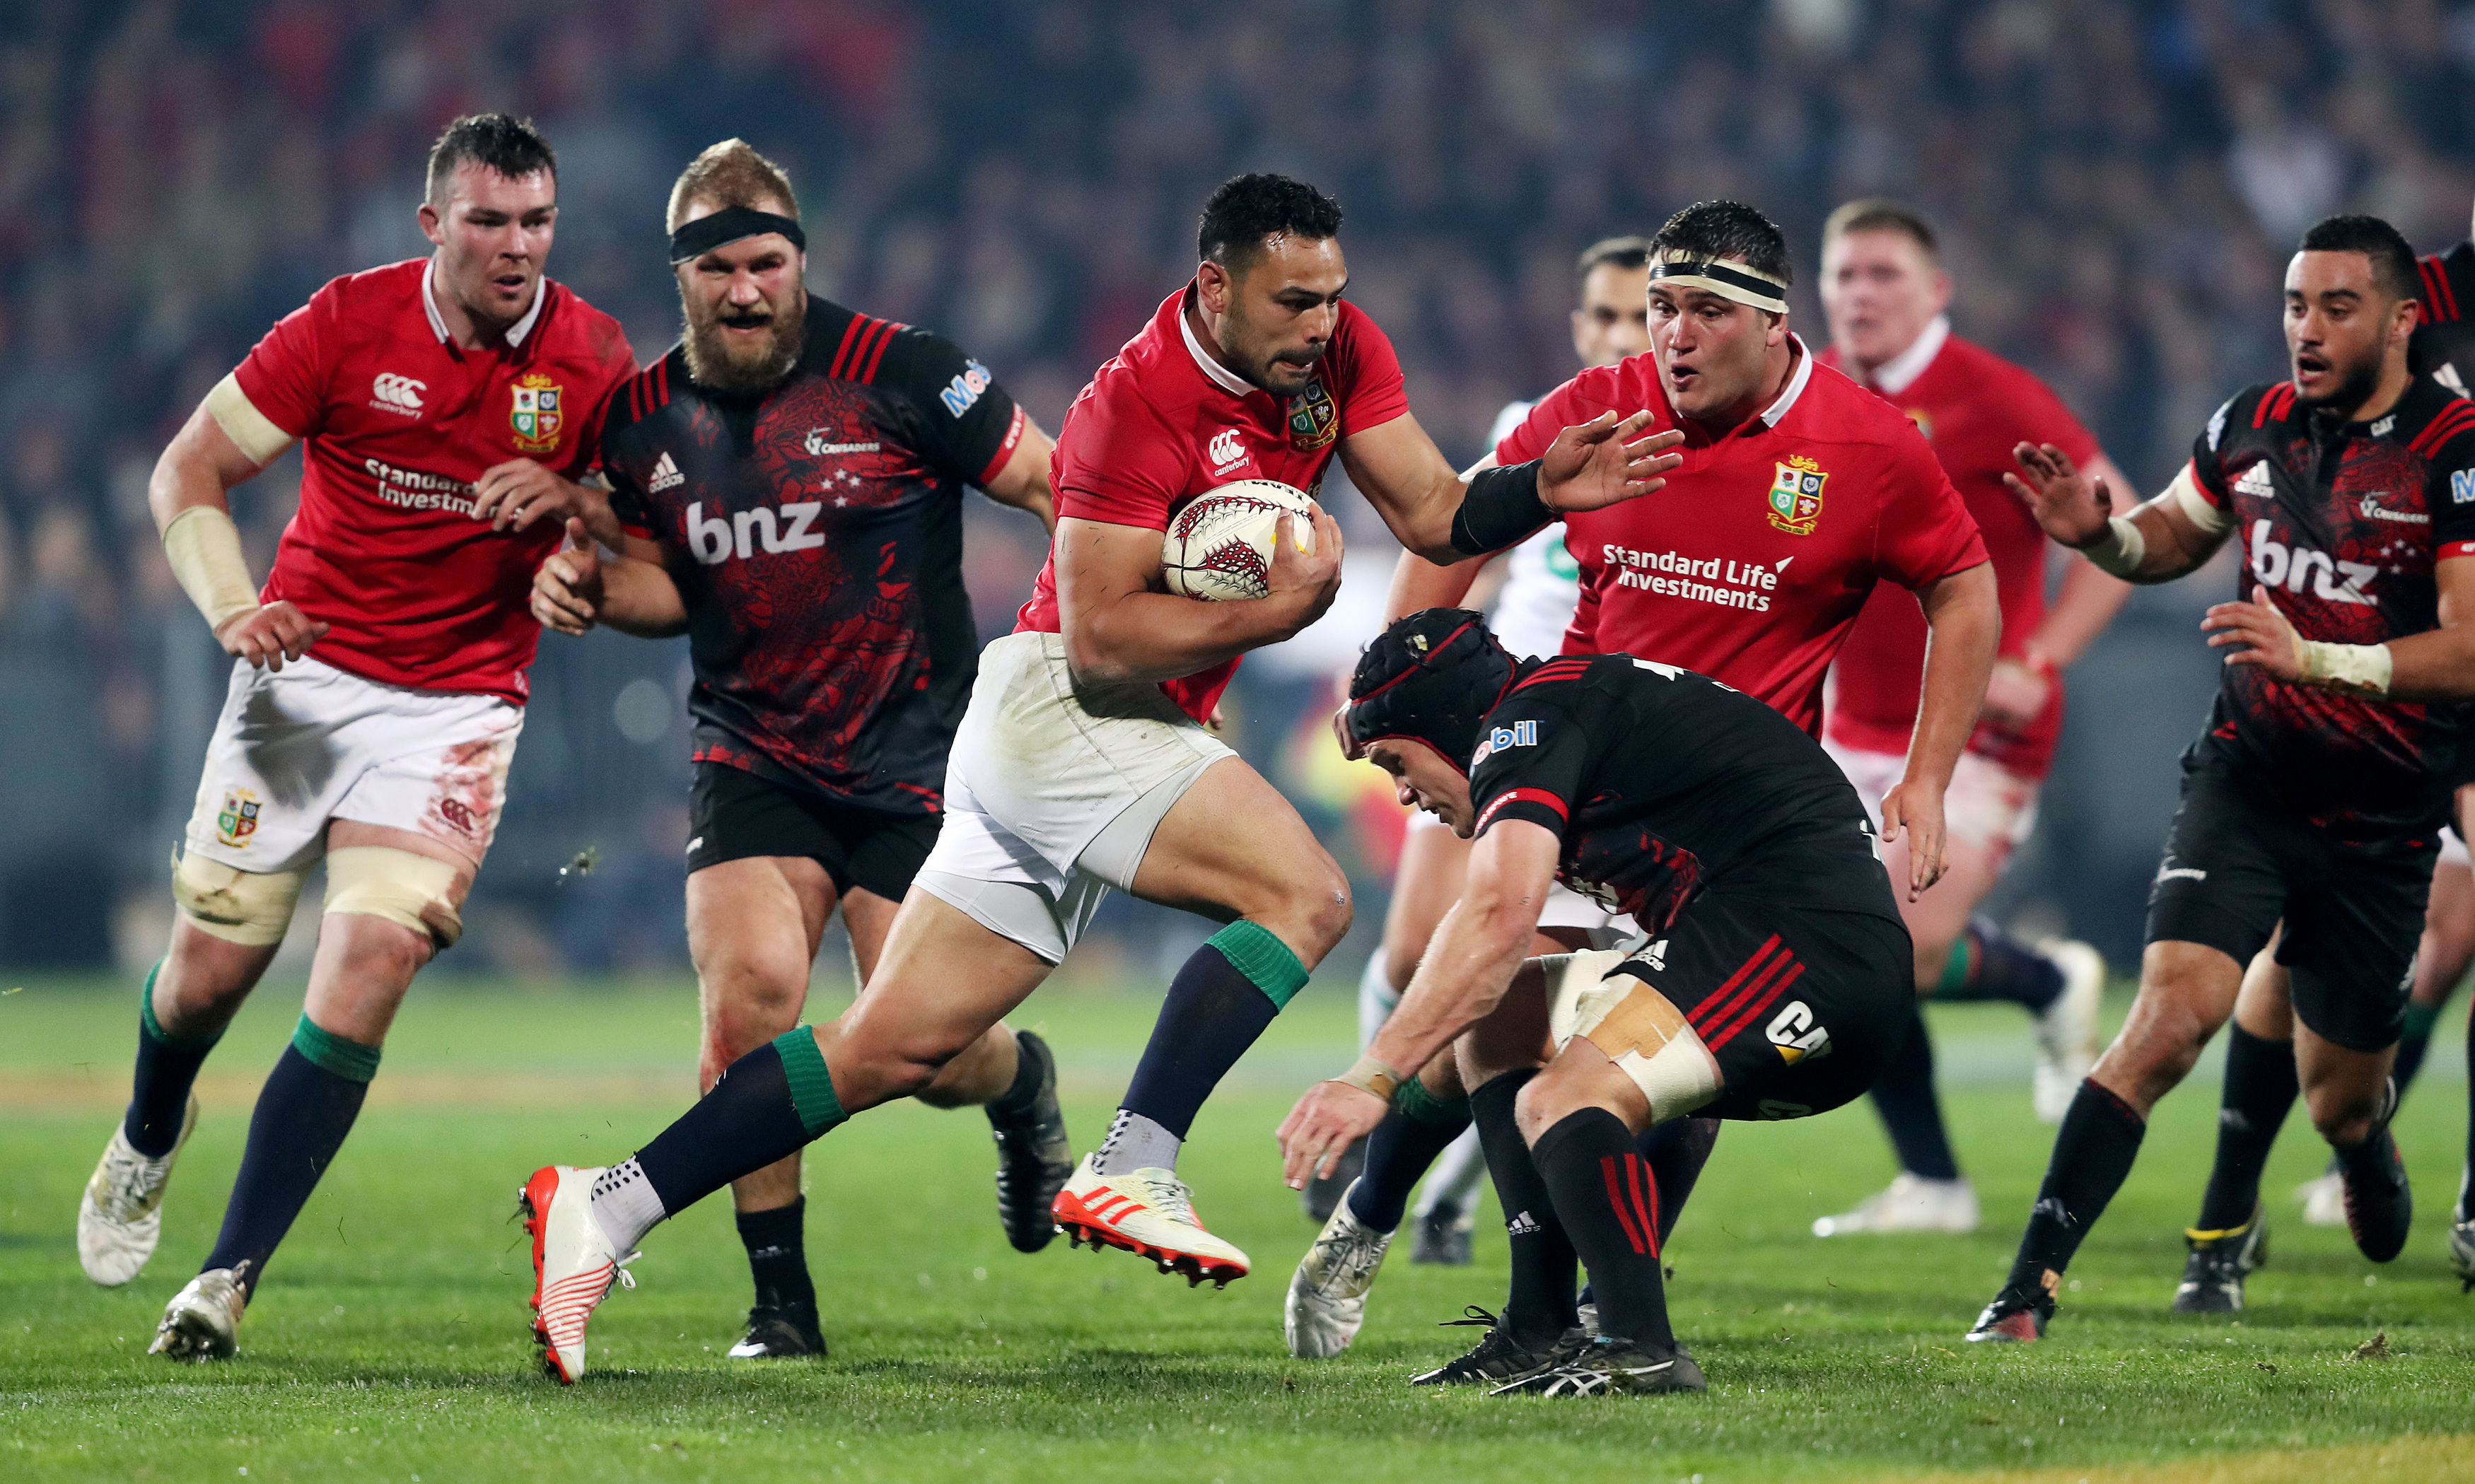 Ben Te'o of the Lions carries hard in the win over the Crusaders in Christchurch.